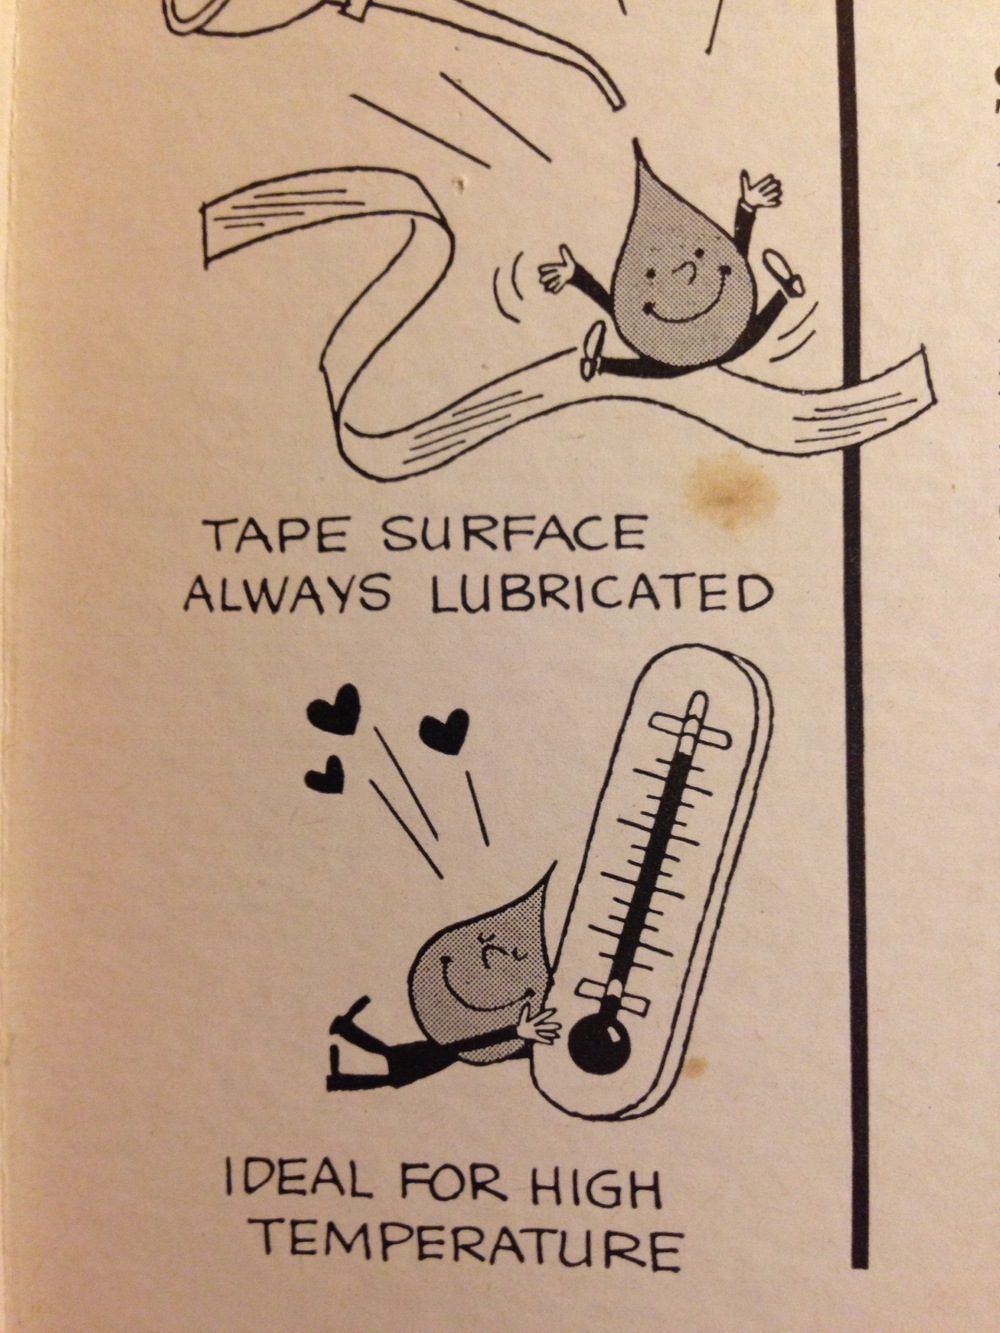 LubricateTapeGraphic.jpg